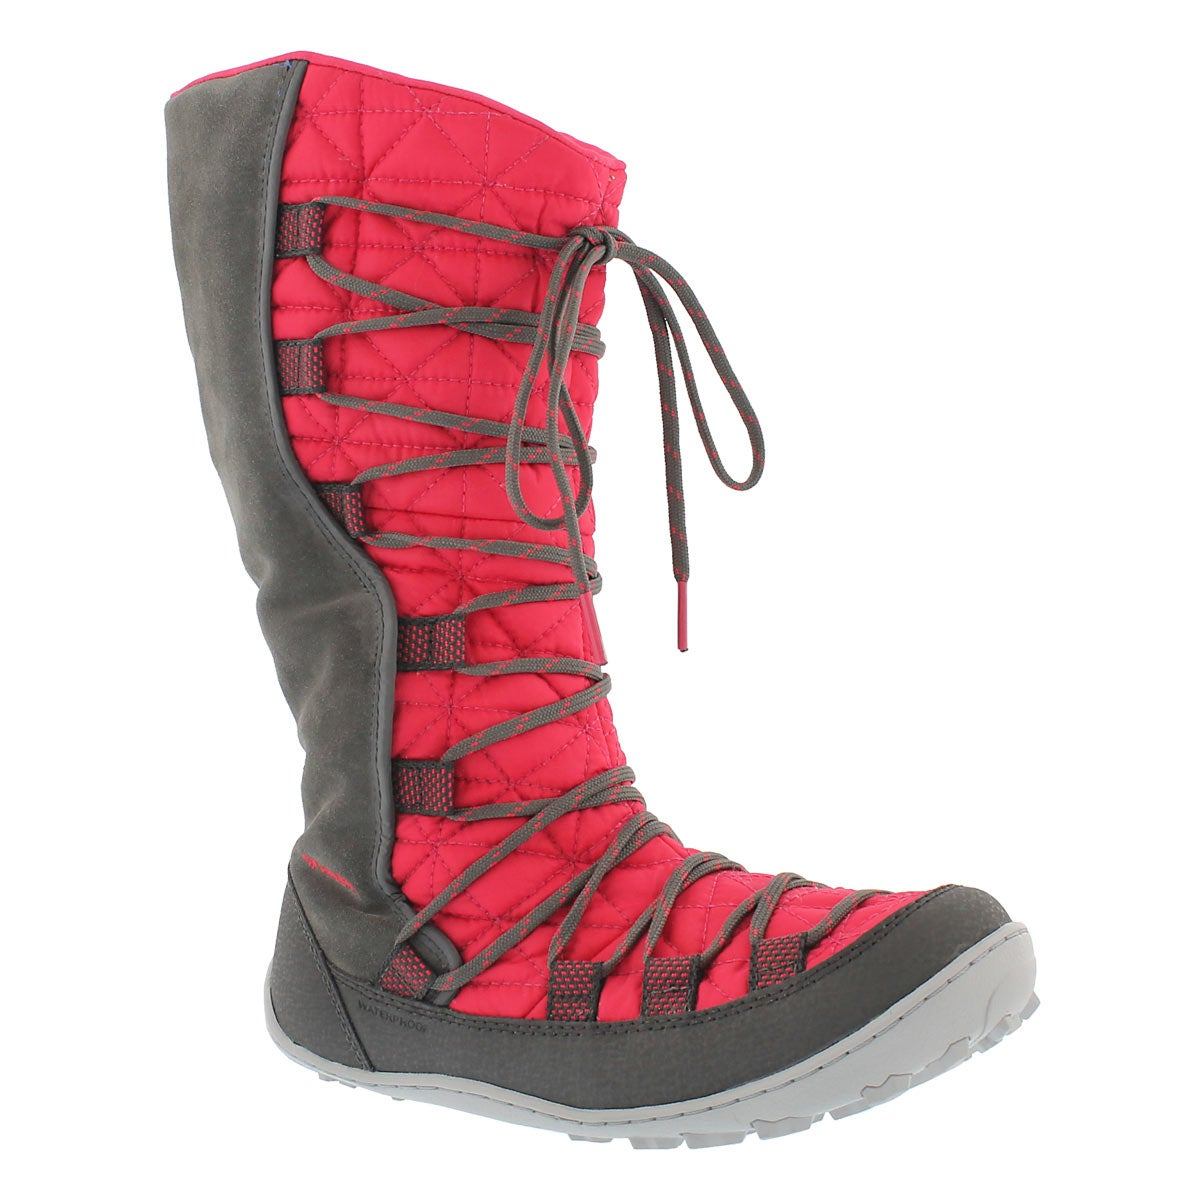 Girls' LOVELAND Omni-Heat pink/grey boots